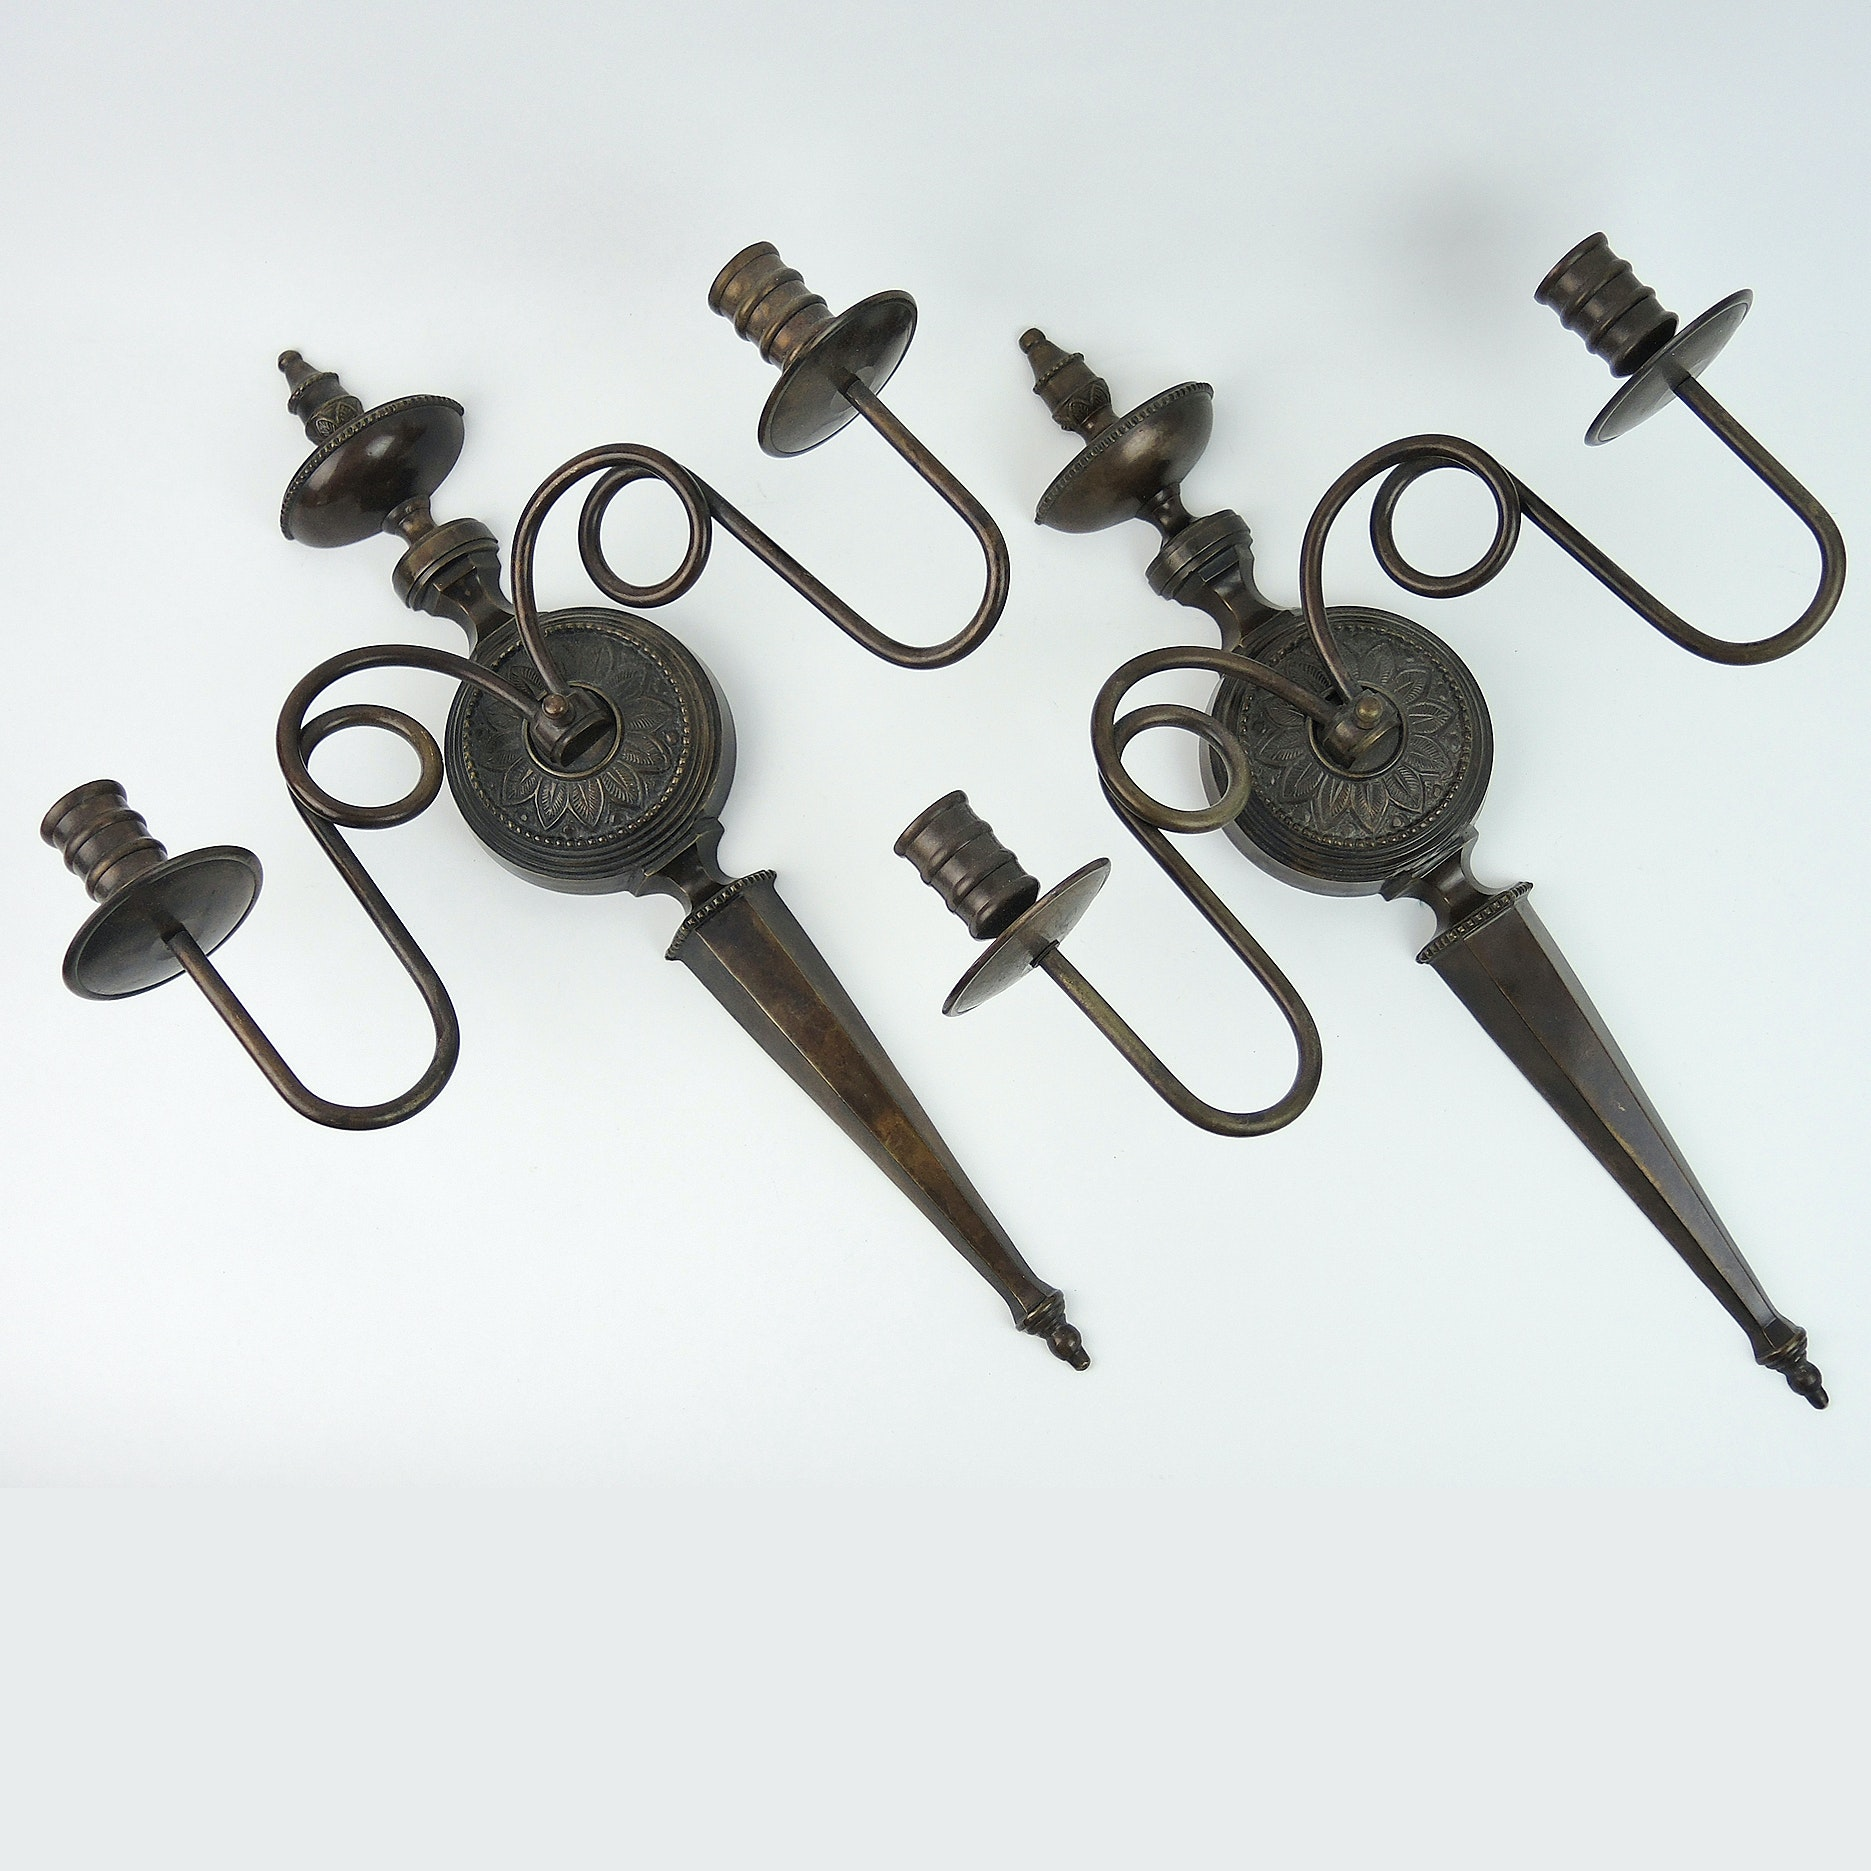 Decorative Metal Wall Sconce Candleholders